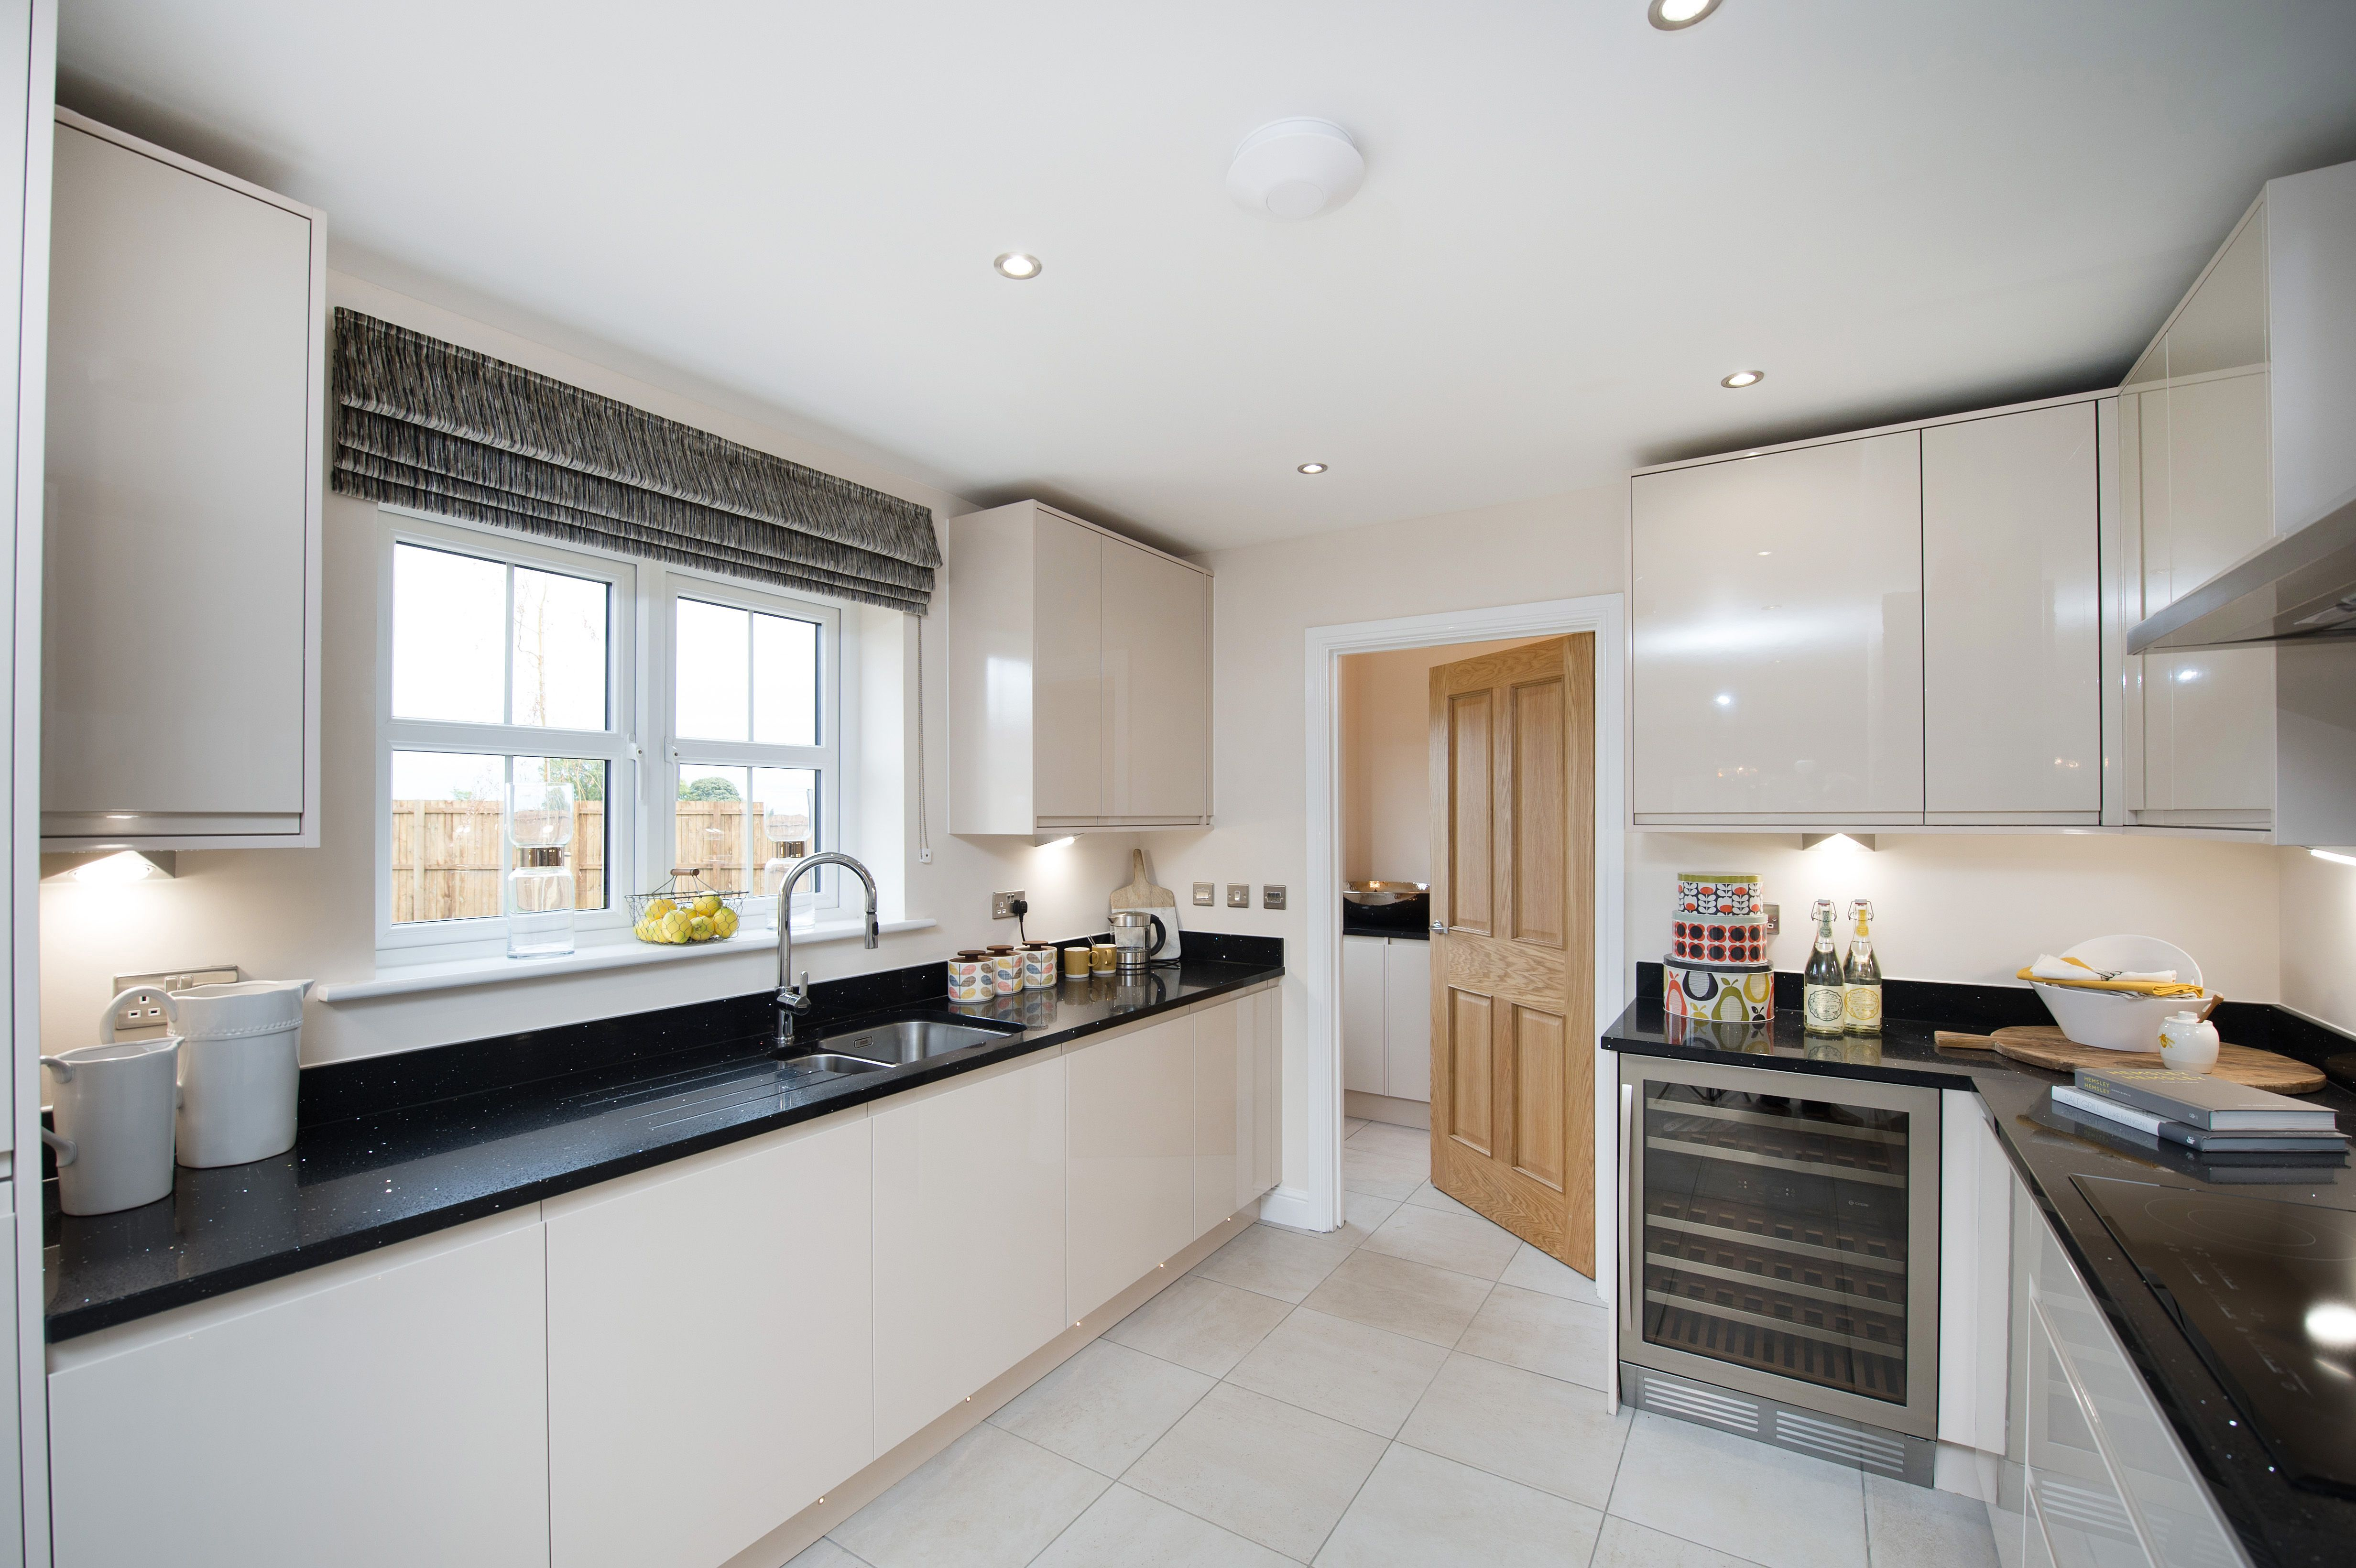 Room North Tyneside Homes Houses for